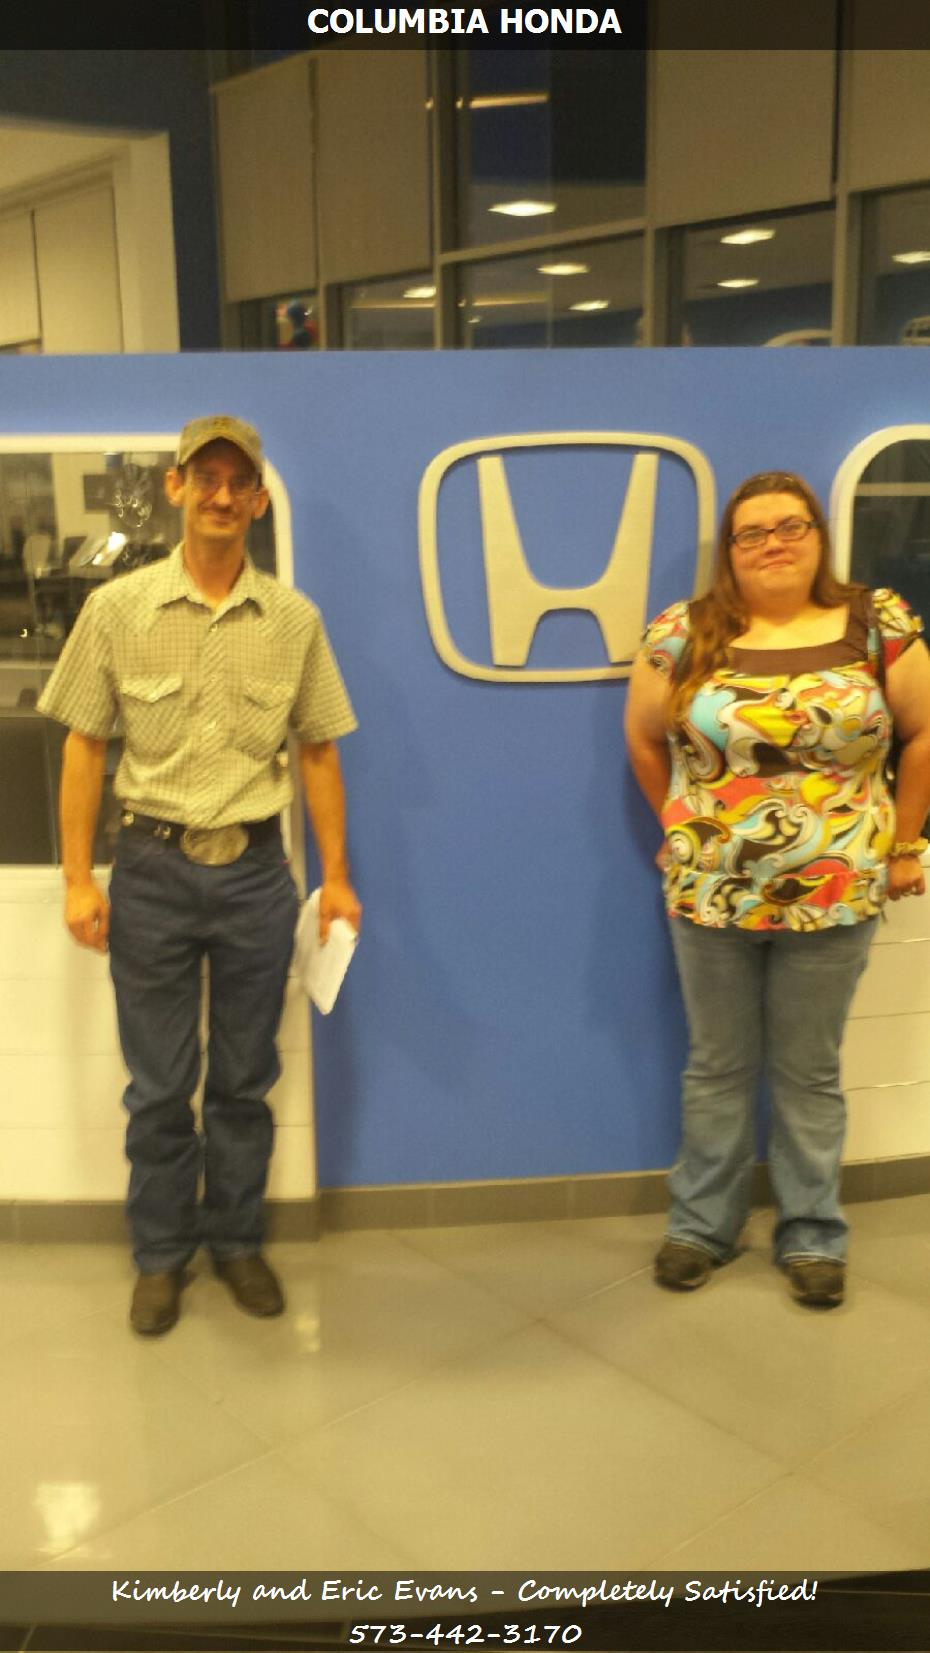 Dealership reviews in columbia missouri columbia honda for Honda dealer columbia mo